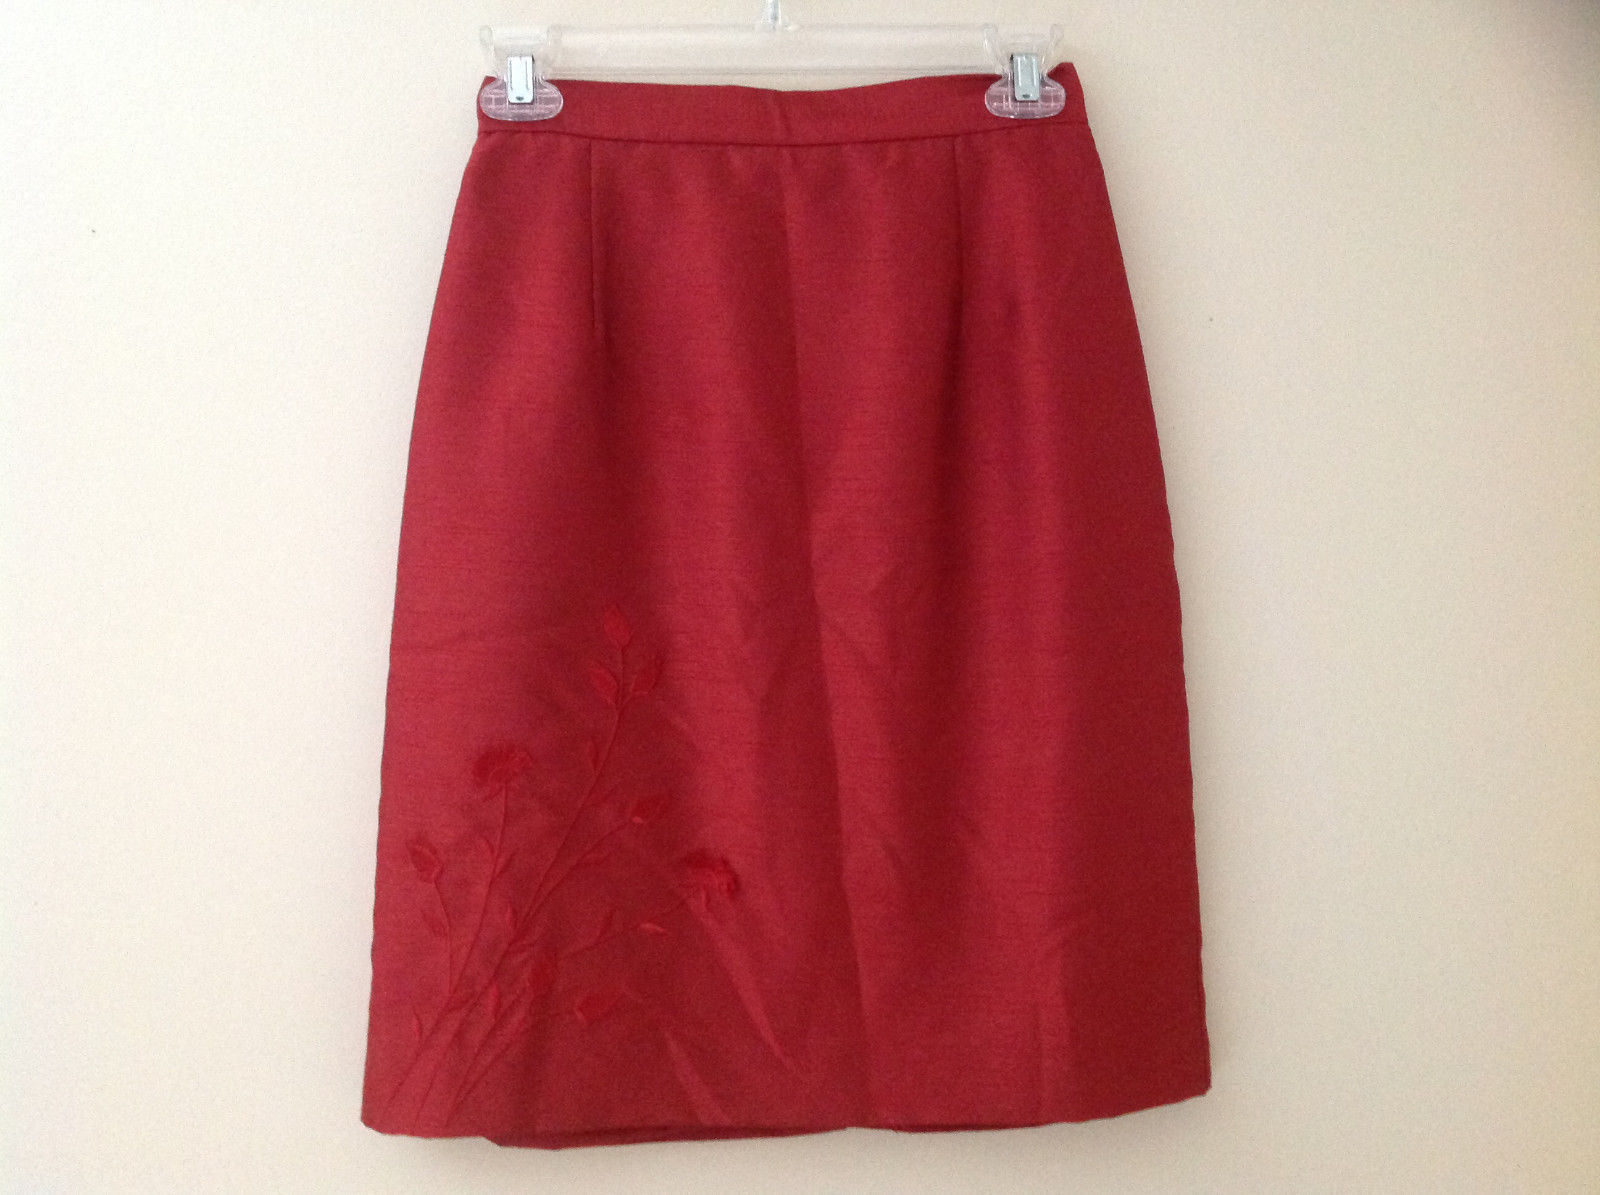 Red Flower Design Knee Length Skirt Zip Closure at Back No Name Tag Size 6P